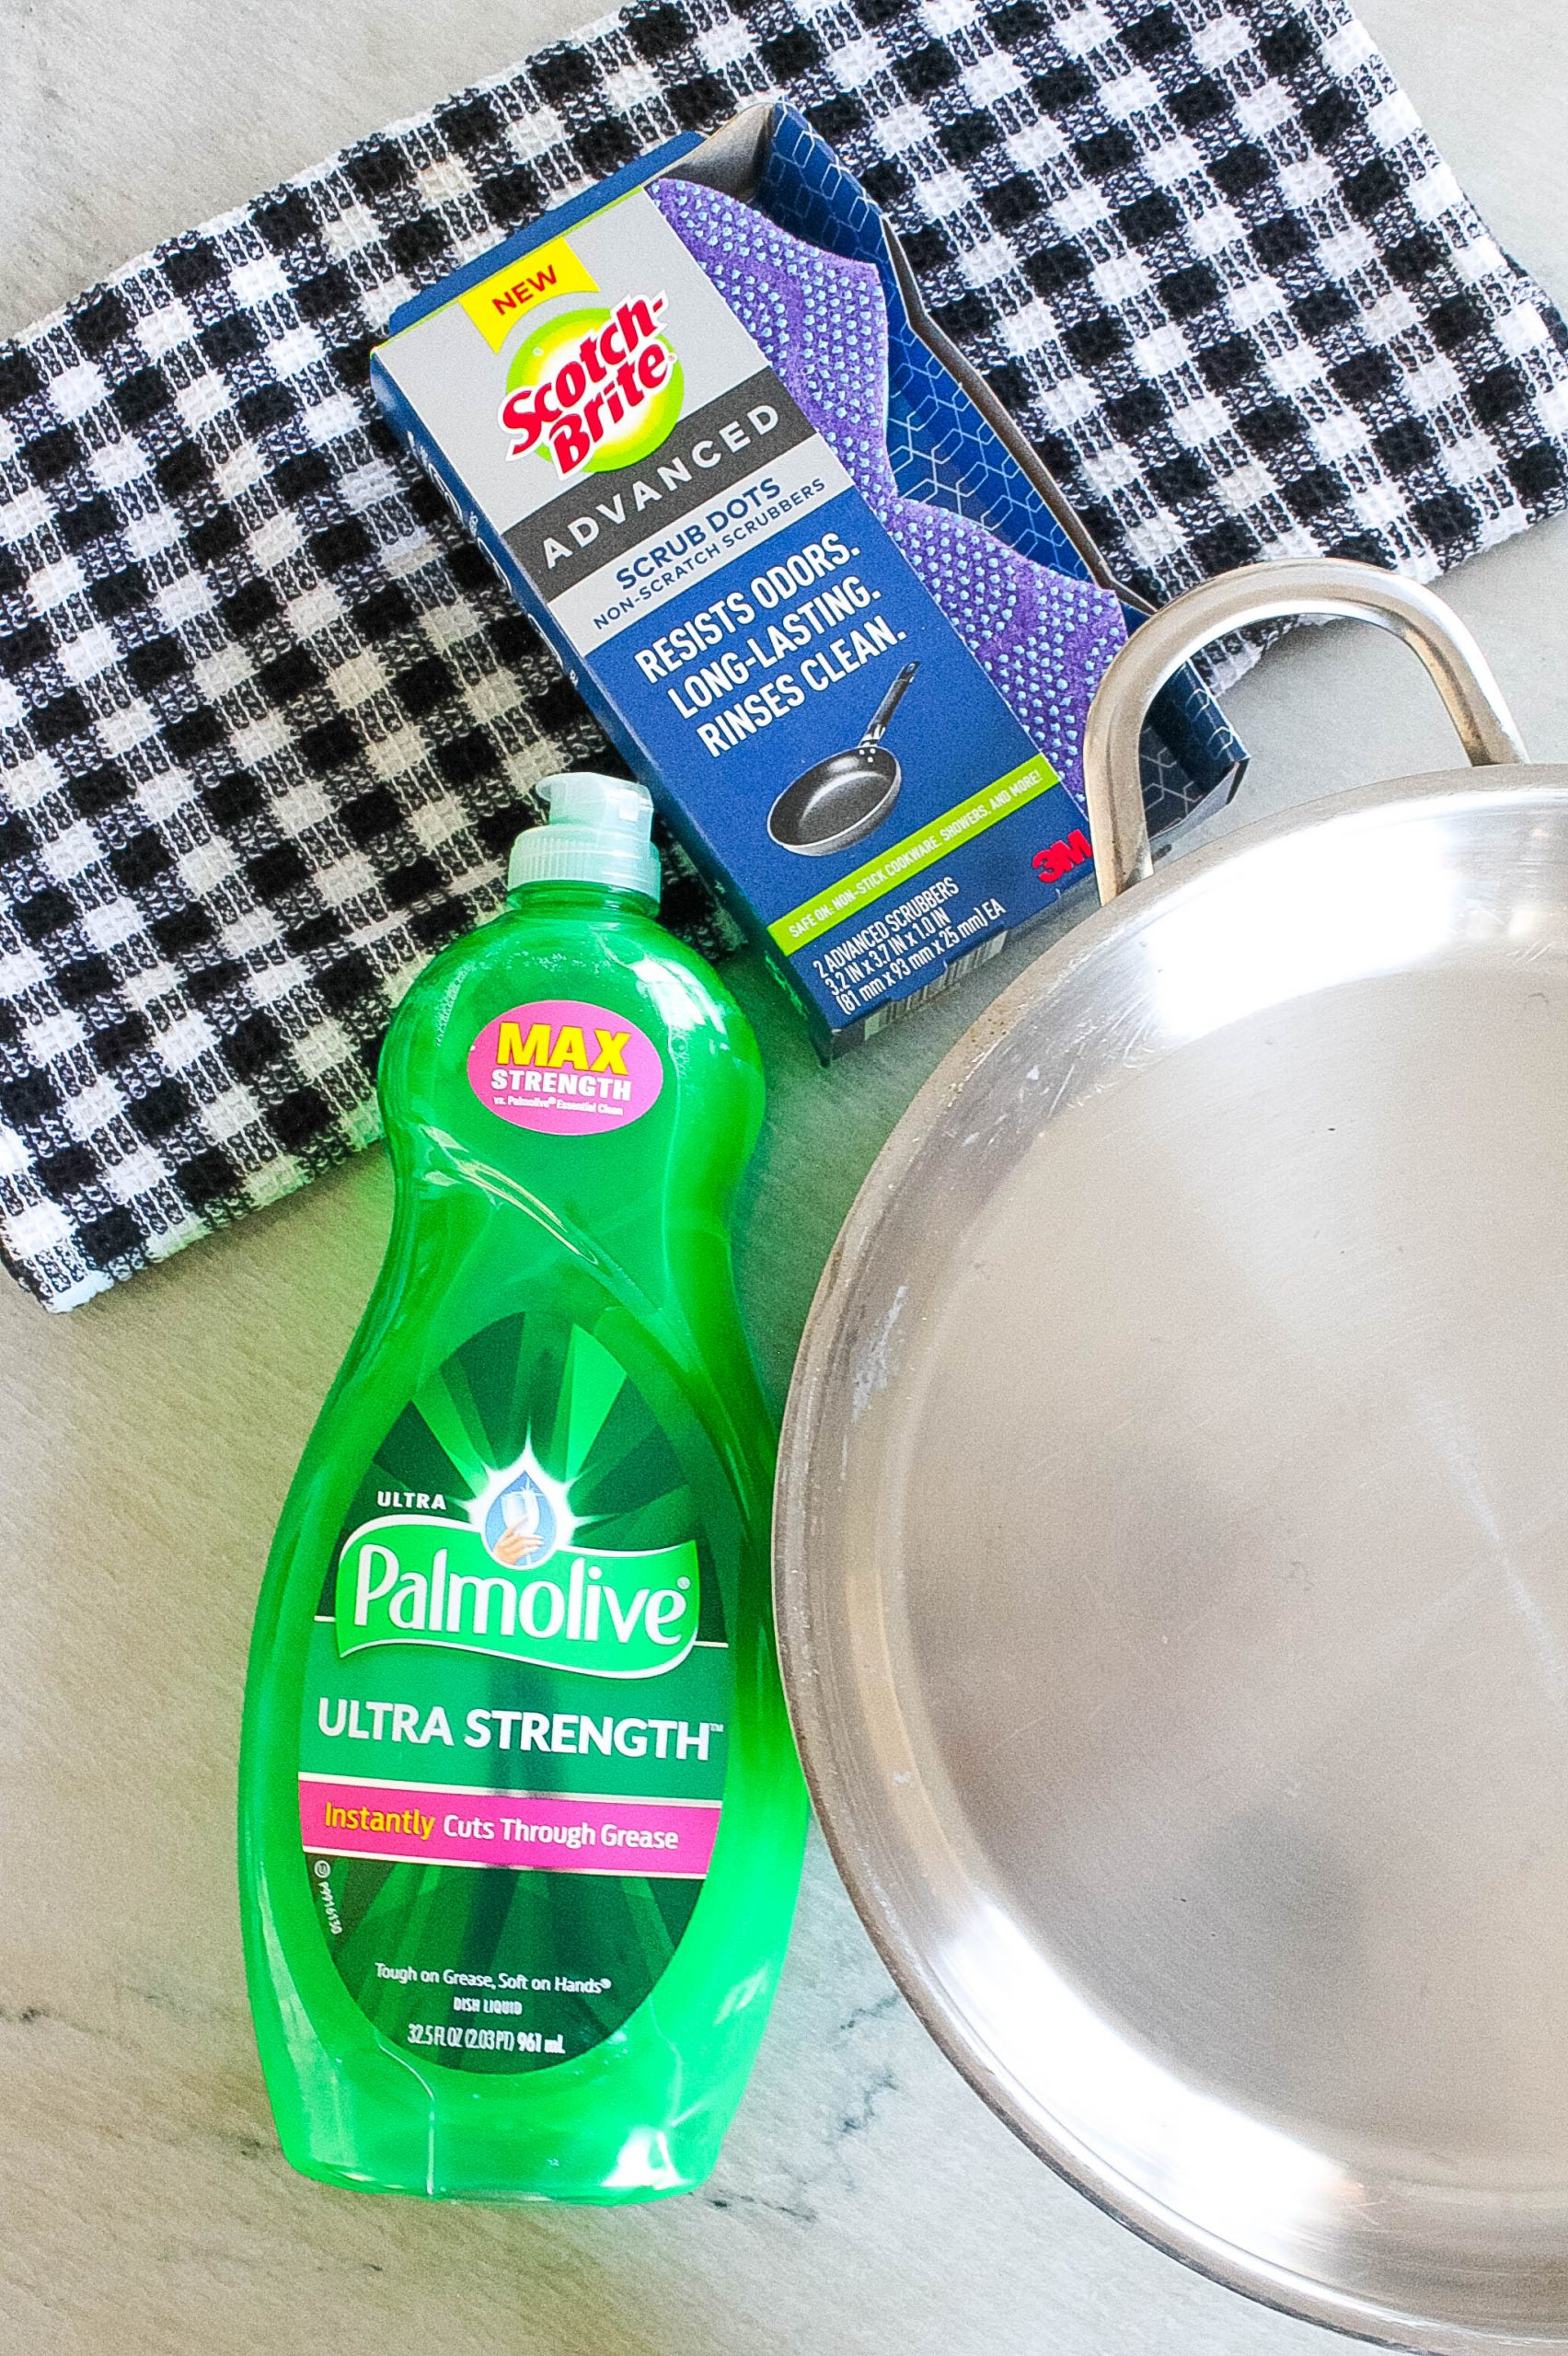 Palmolive and Scotch-Brite